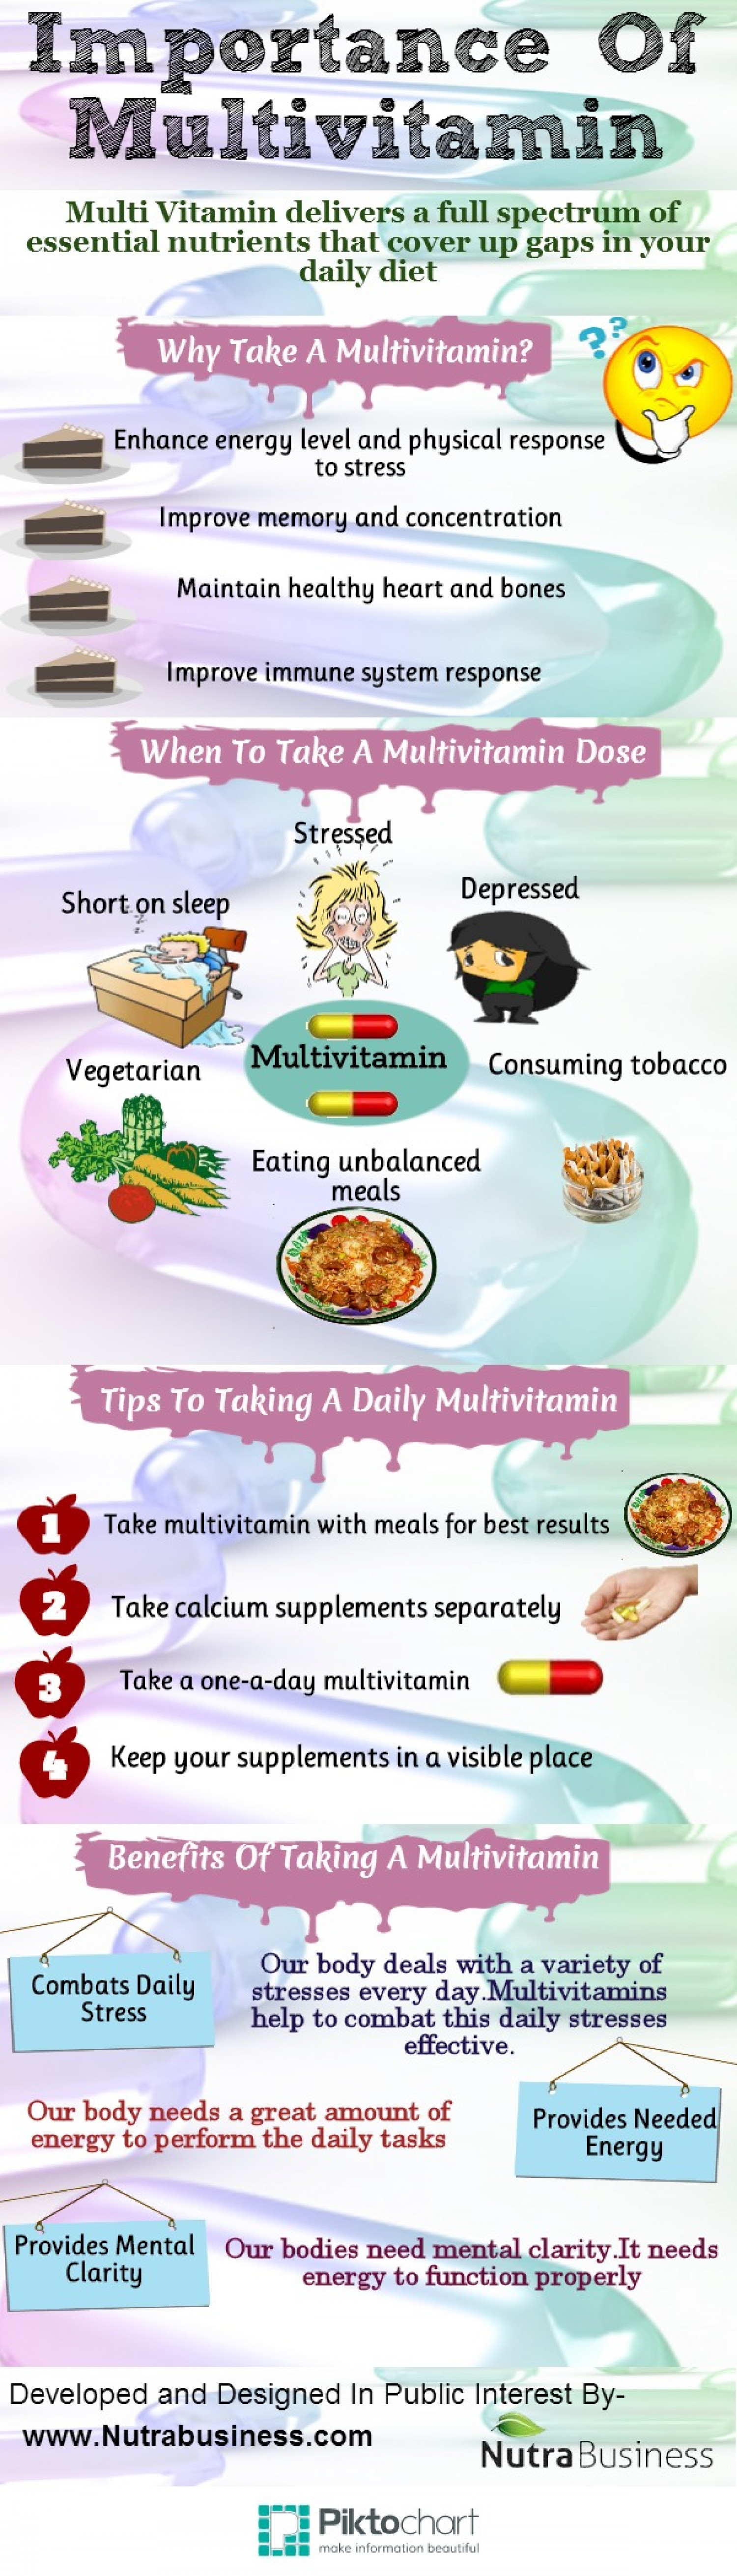 Importance Of Multivitamin Infographic